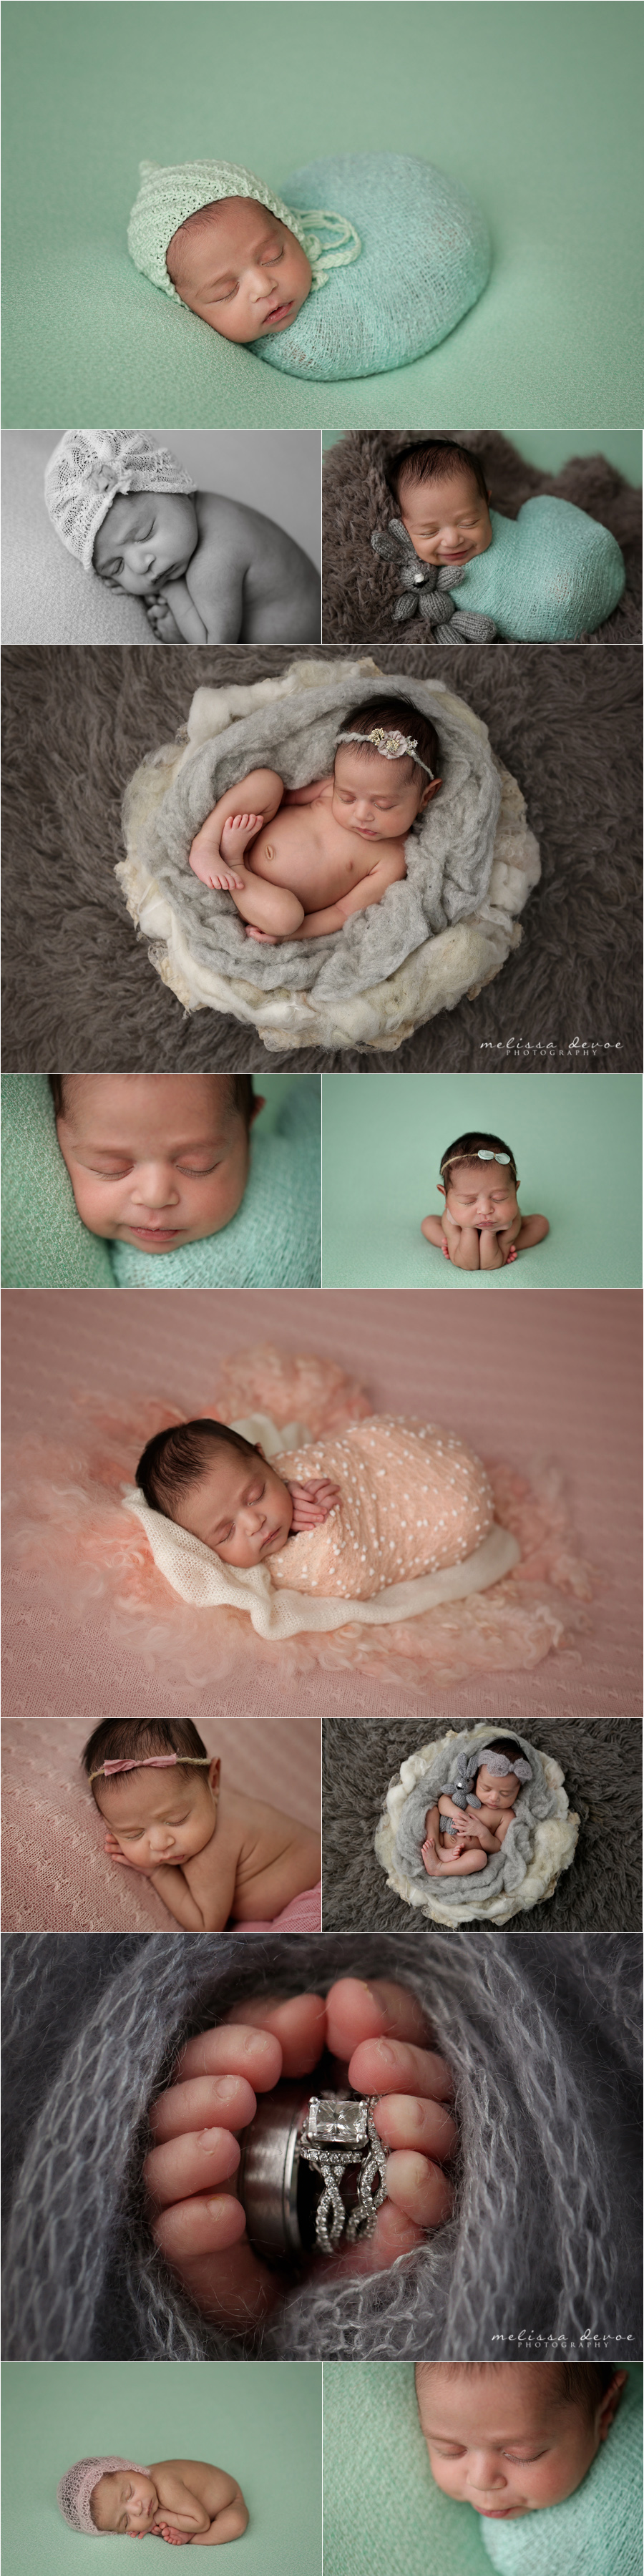 Melissa DeVoe Photography Raleigh NC Newborn Baby Photographer